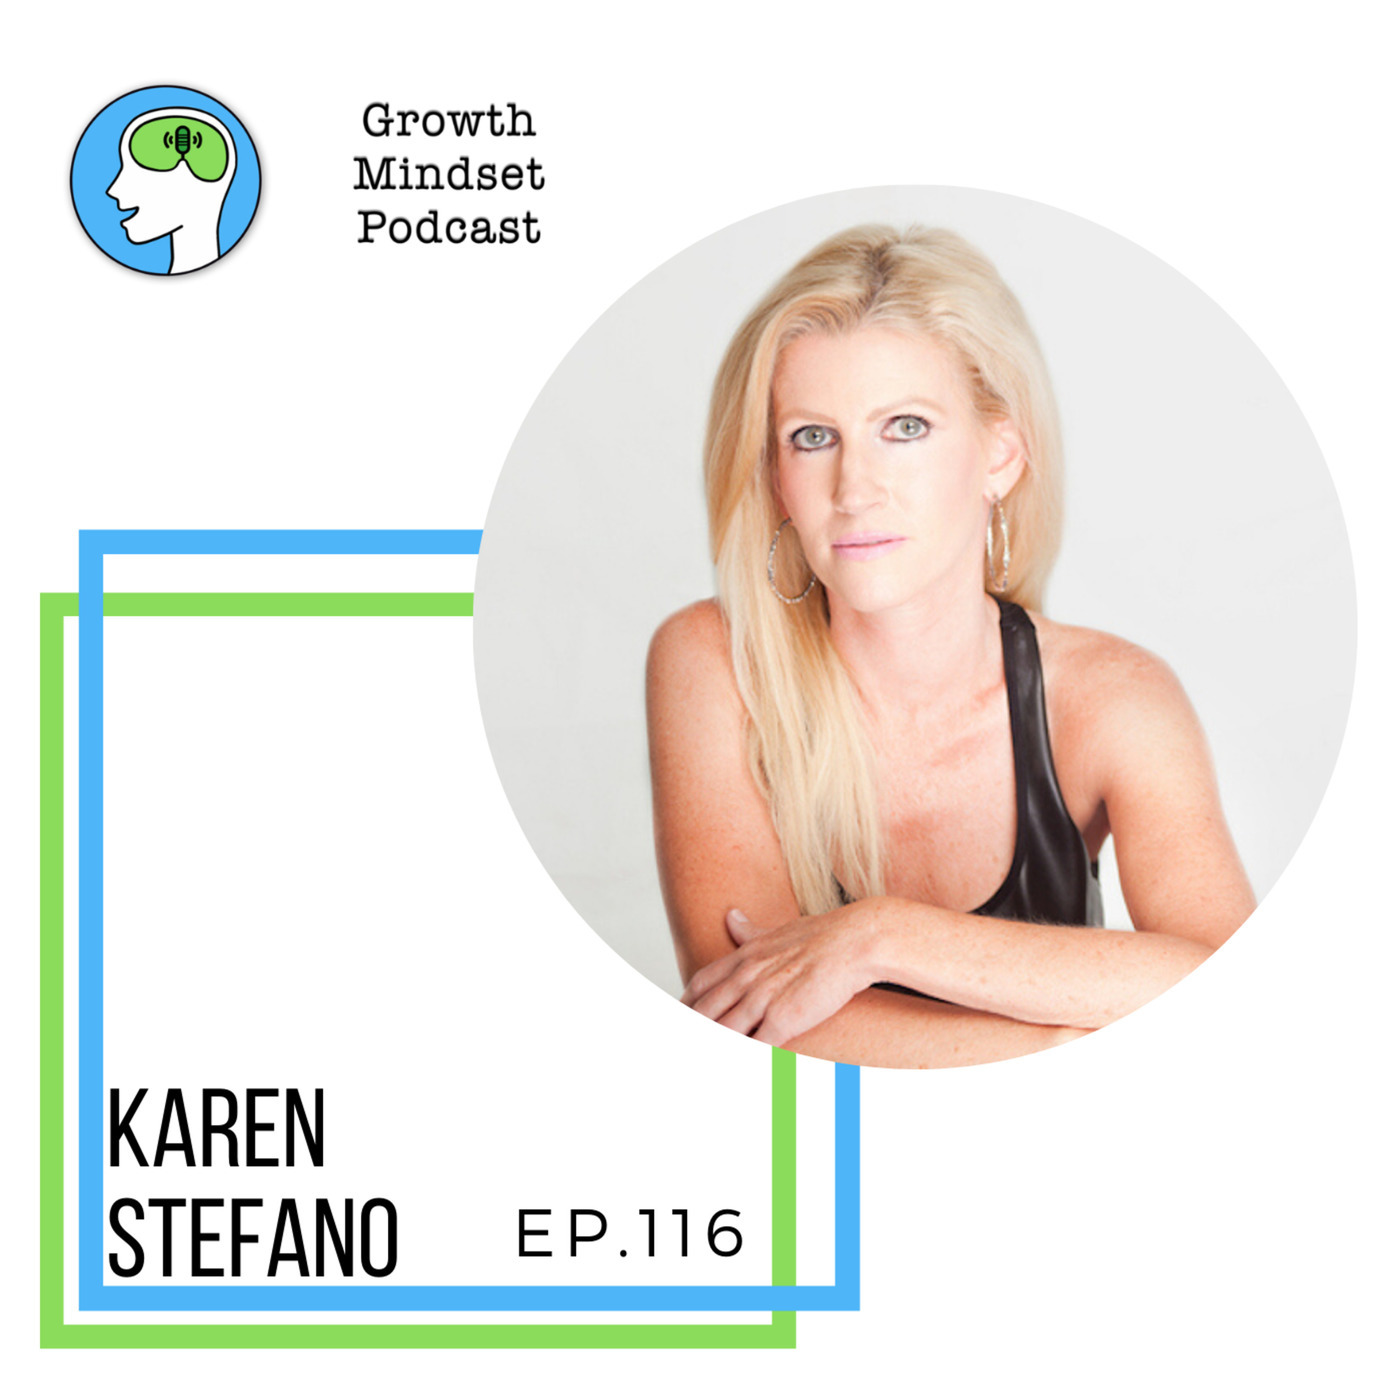 Growth Mindset Podcast: 116: Trauma and Mental Health - Karen Stefano, Author - What a Body Remembers